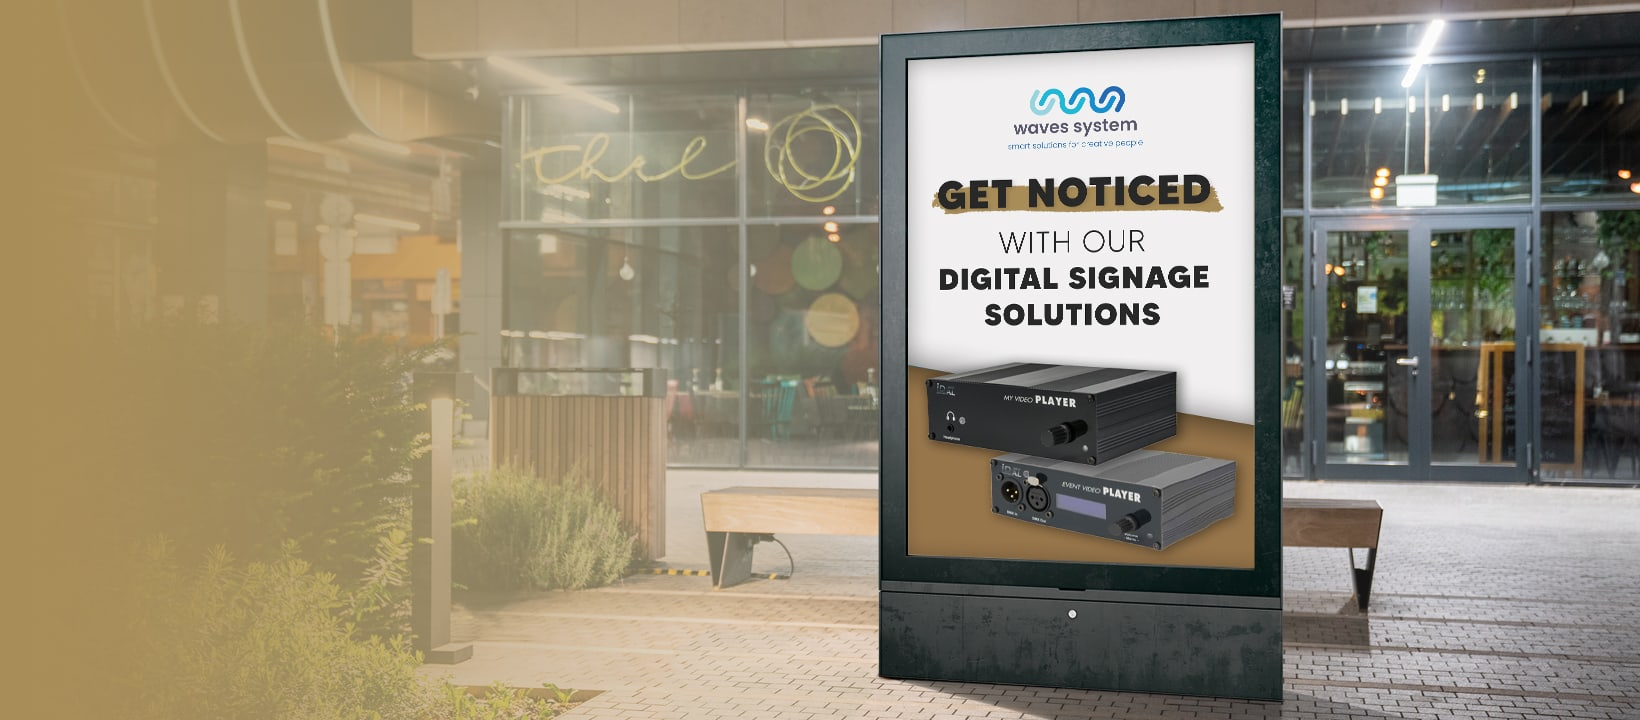 Get Noticed With Digital Signage Solutions Thanks To Waves System Video & Event Players 1